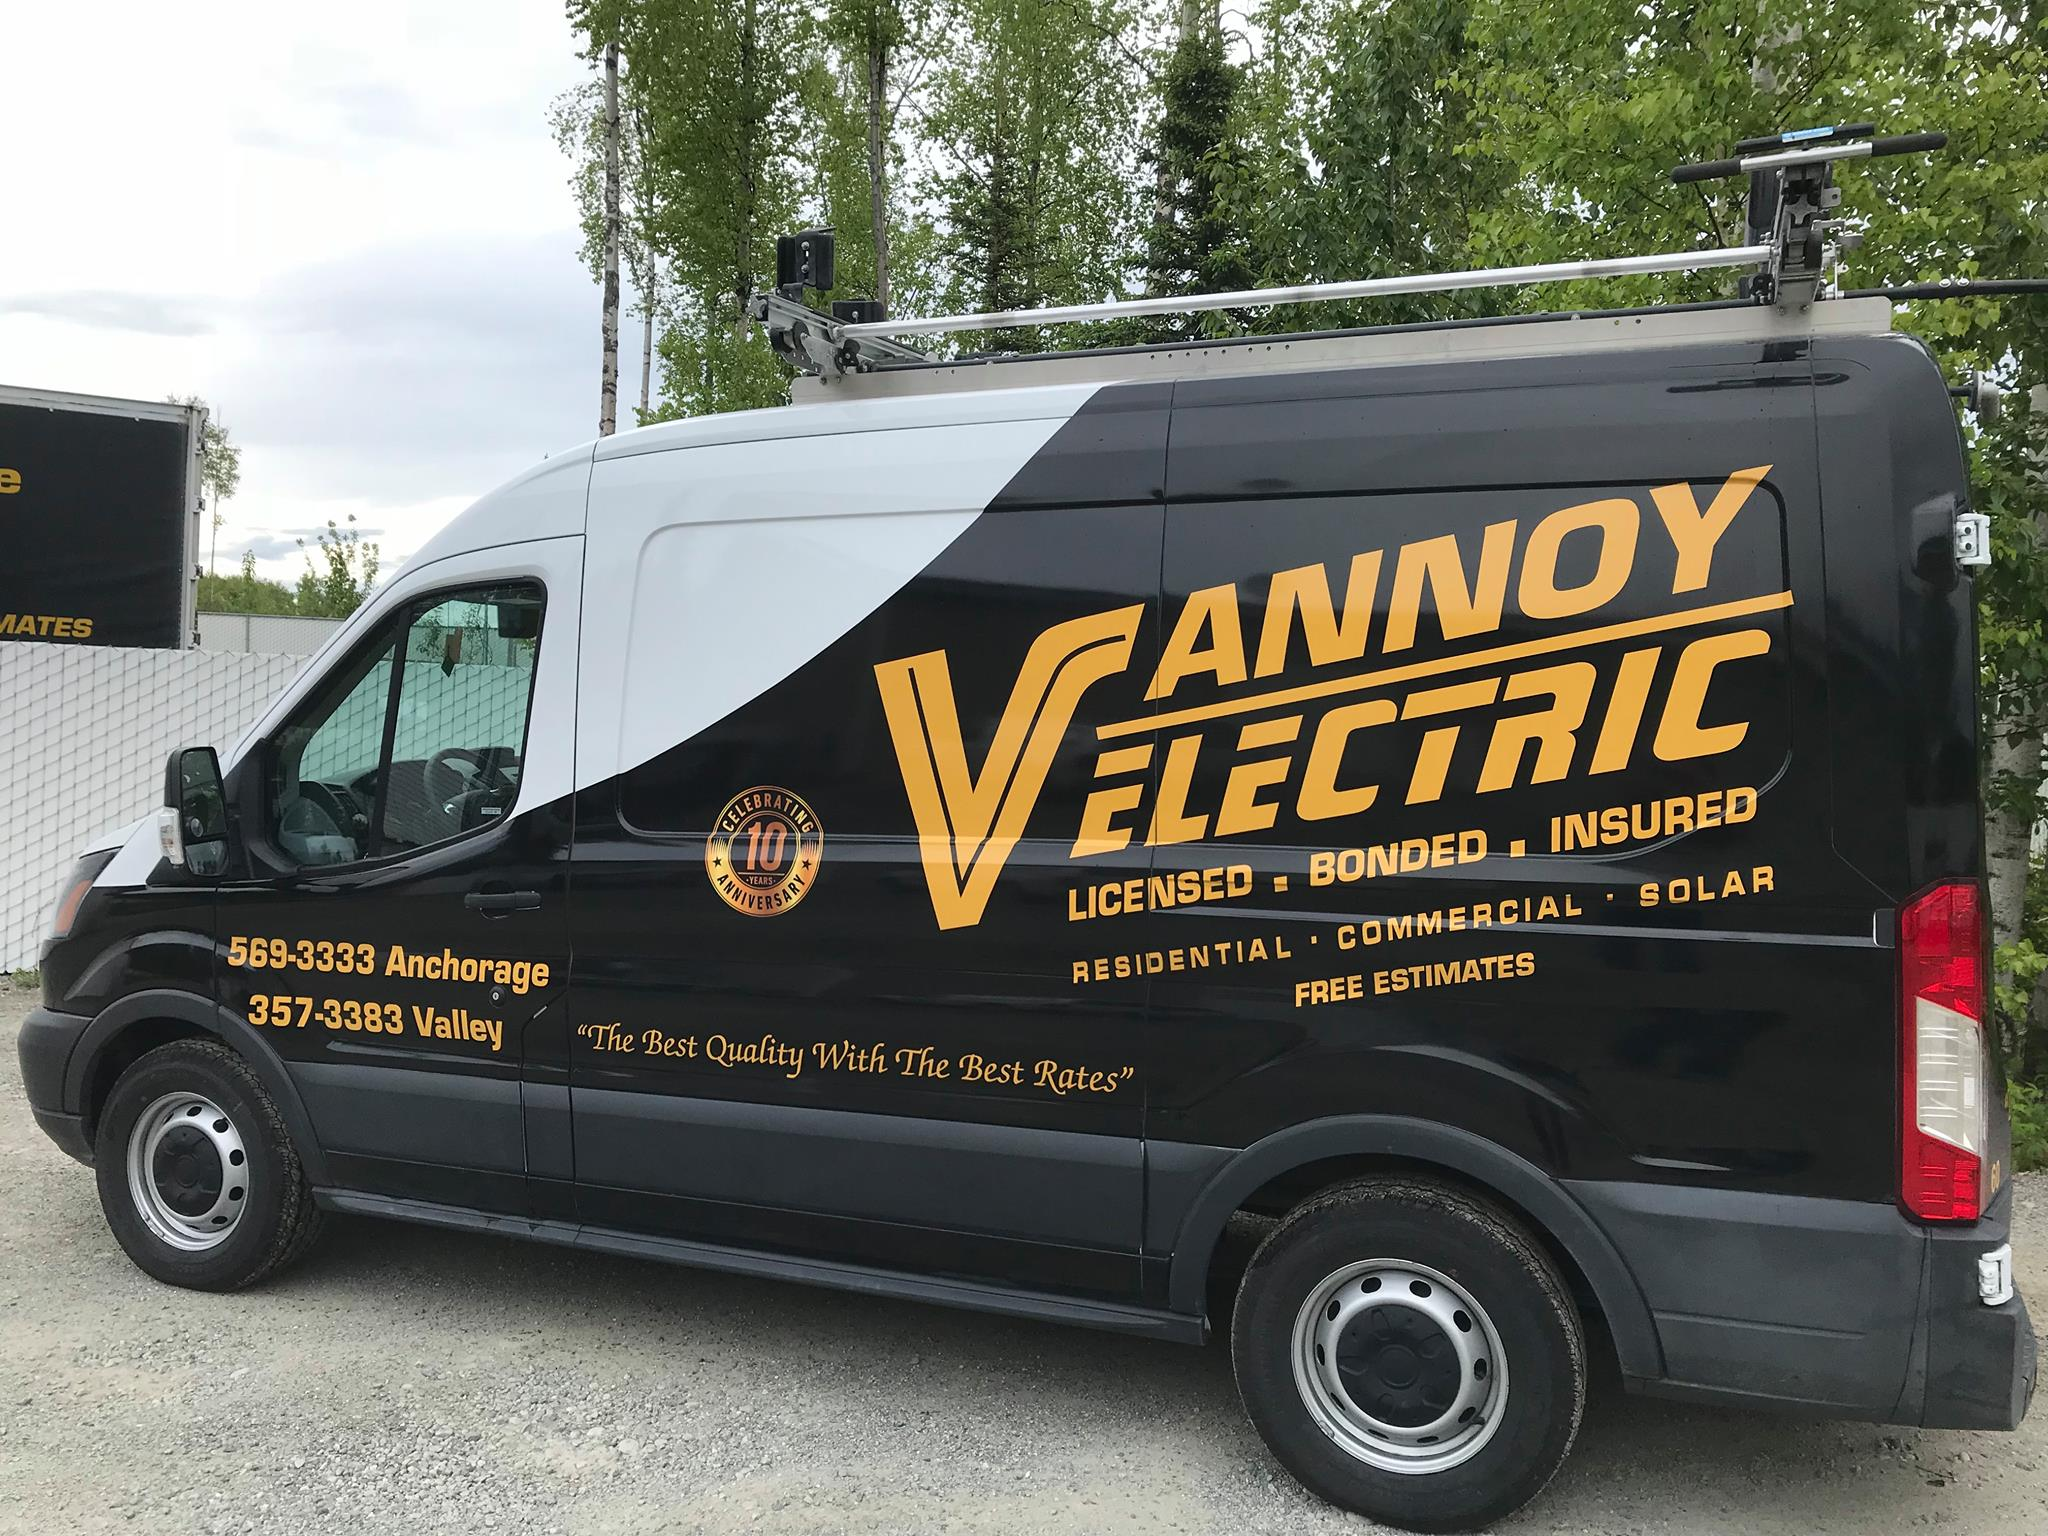 Vannoy Electric – ELFS